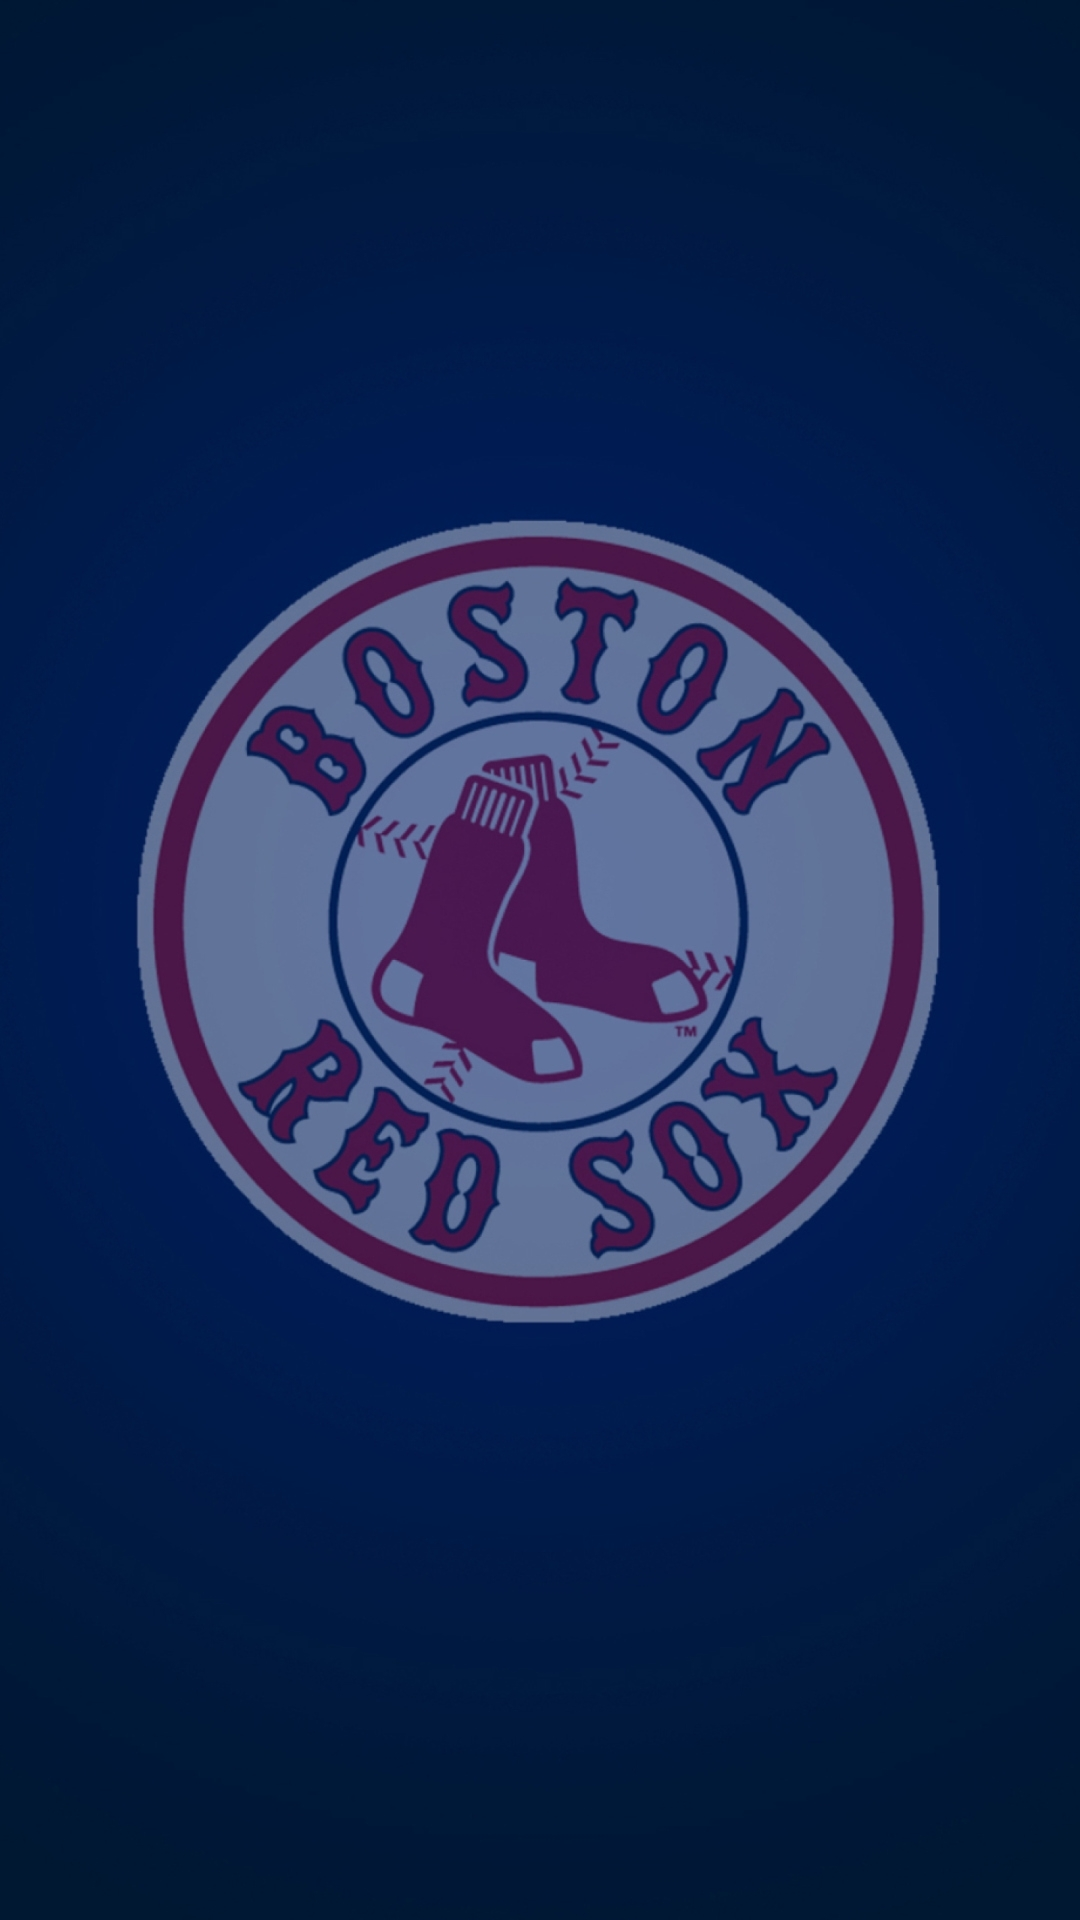 10 Best Red Sox Phone Wallpapers FULL HD 1080p For PC Desktop 2018 Free Download Boston